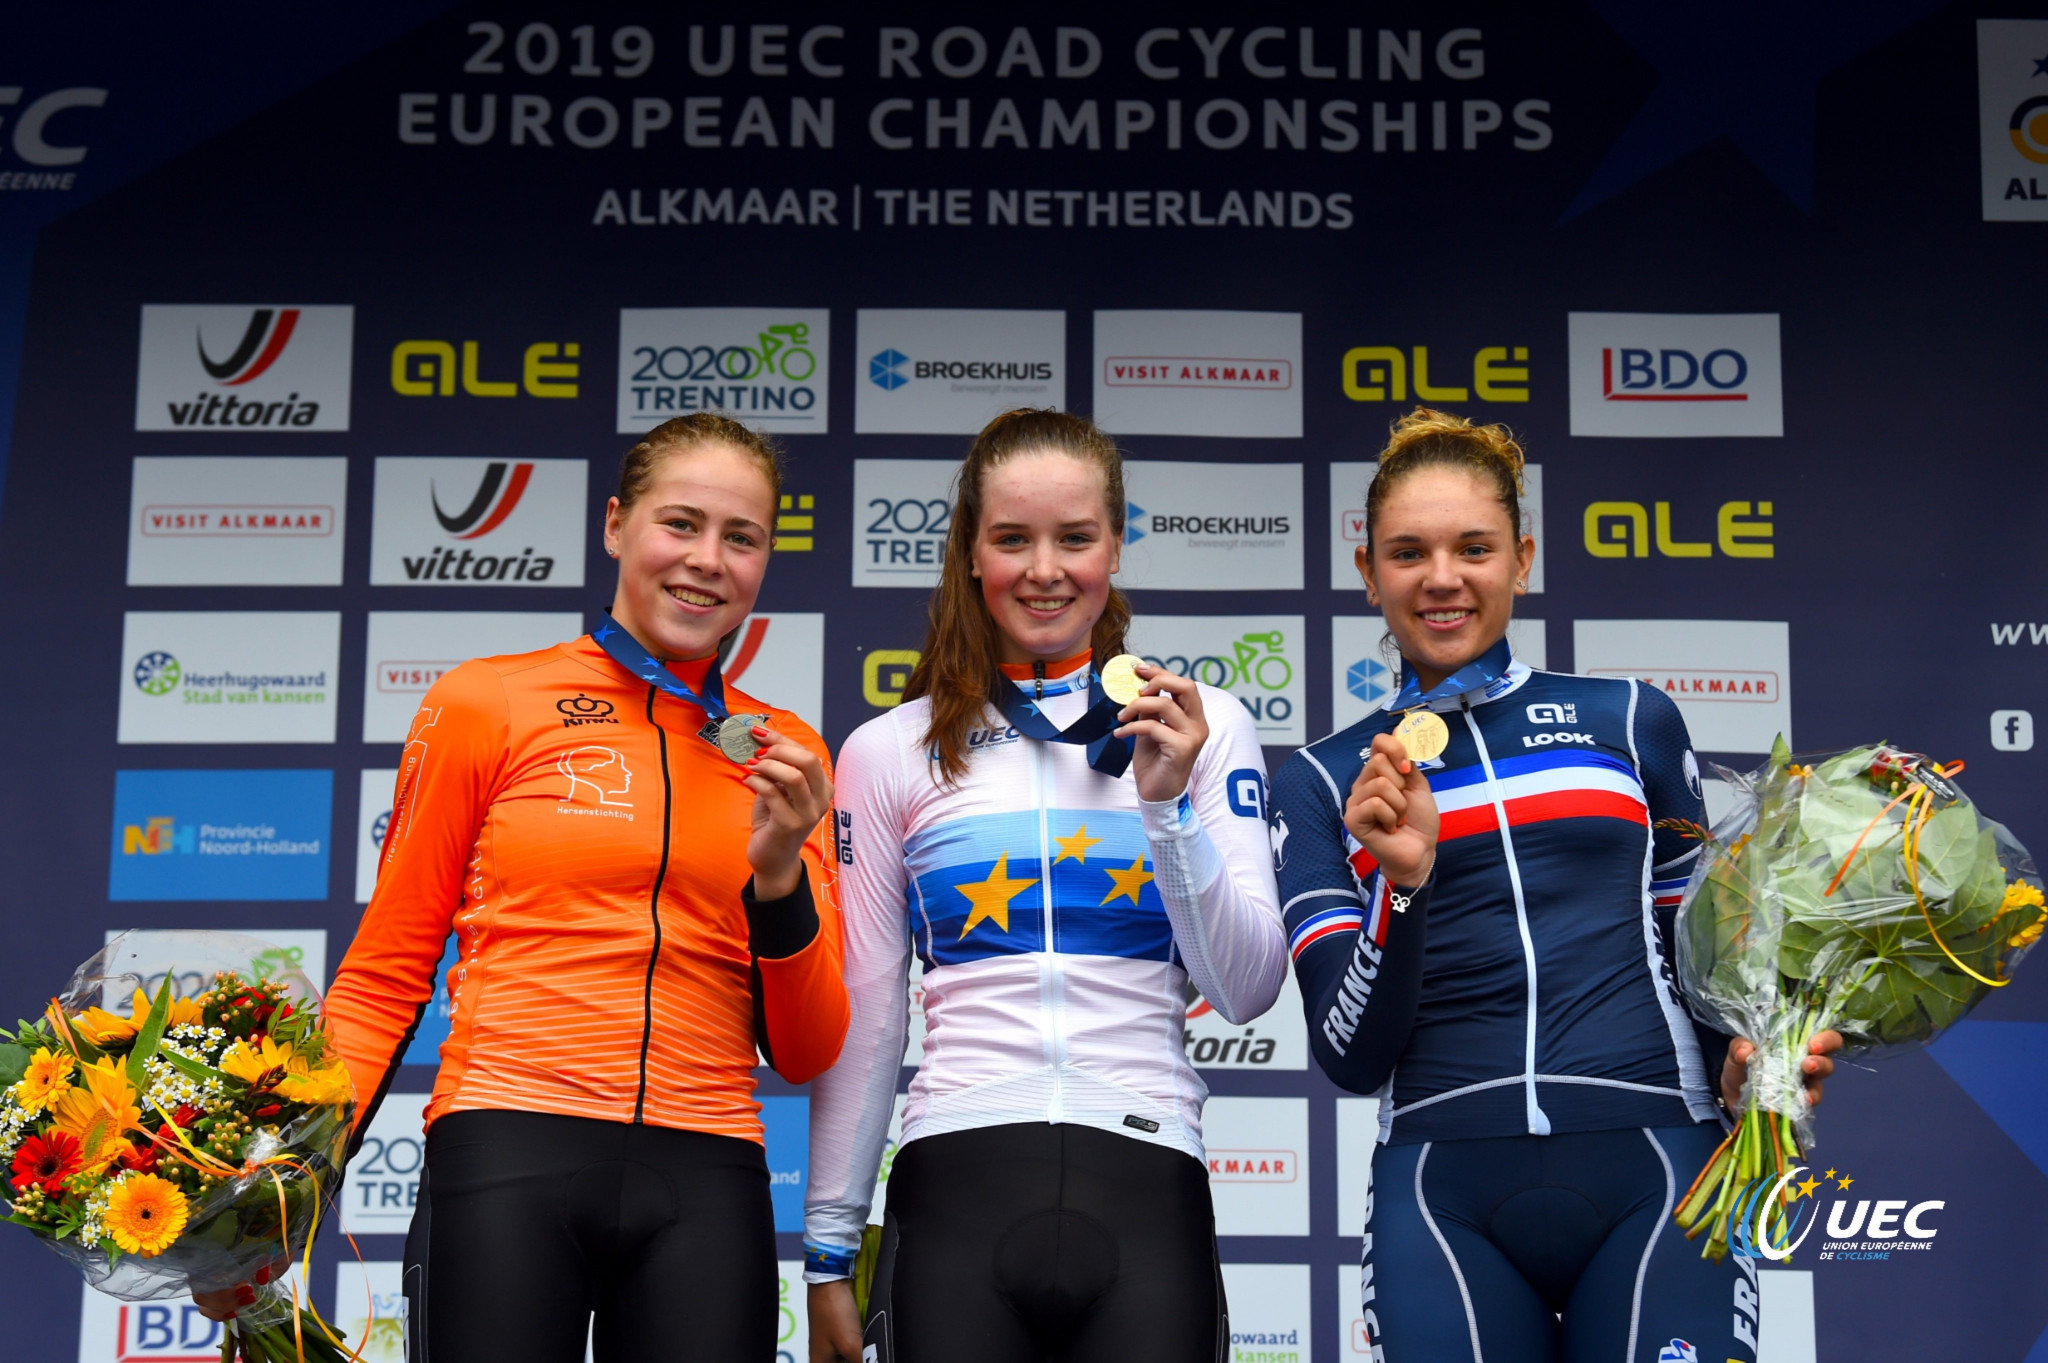 Ilse Pluimers continued Netherlands' strong record at the European Cycling Union Road Championships ©Twitter/UEC Cycling